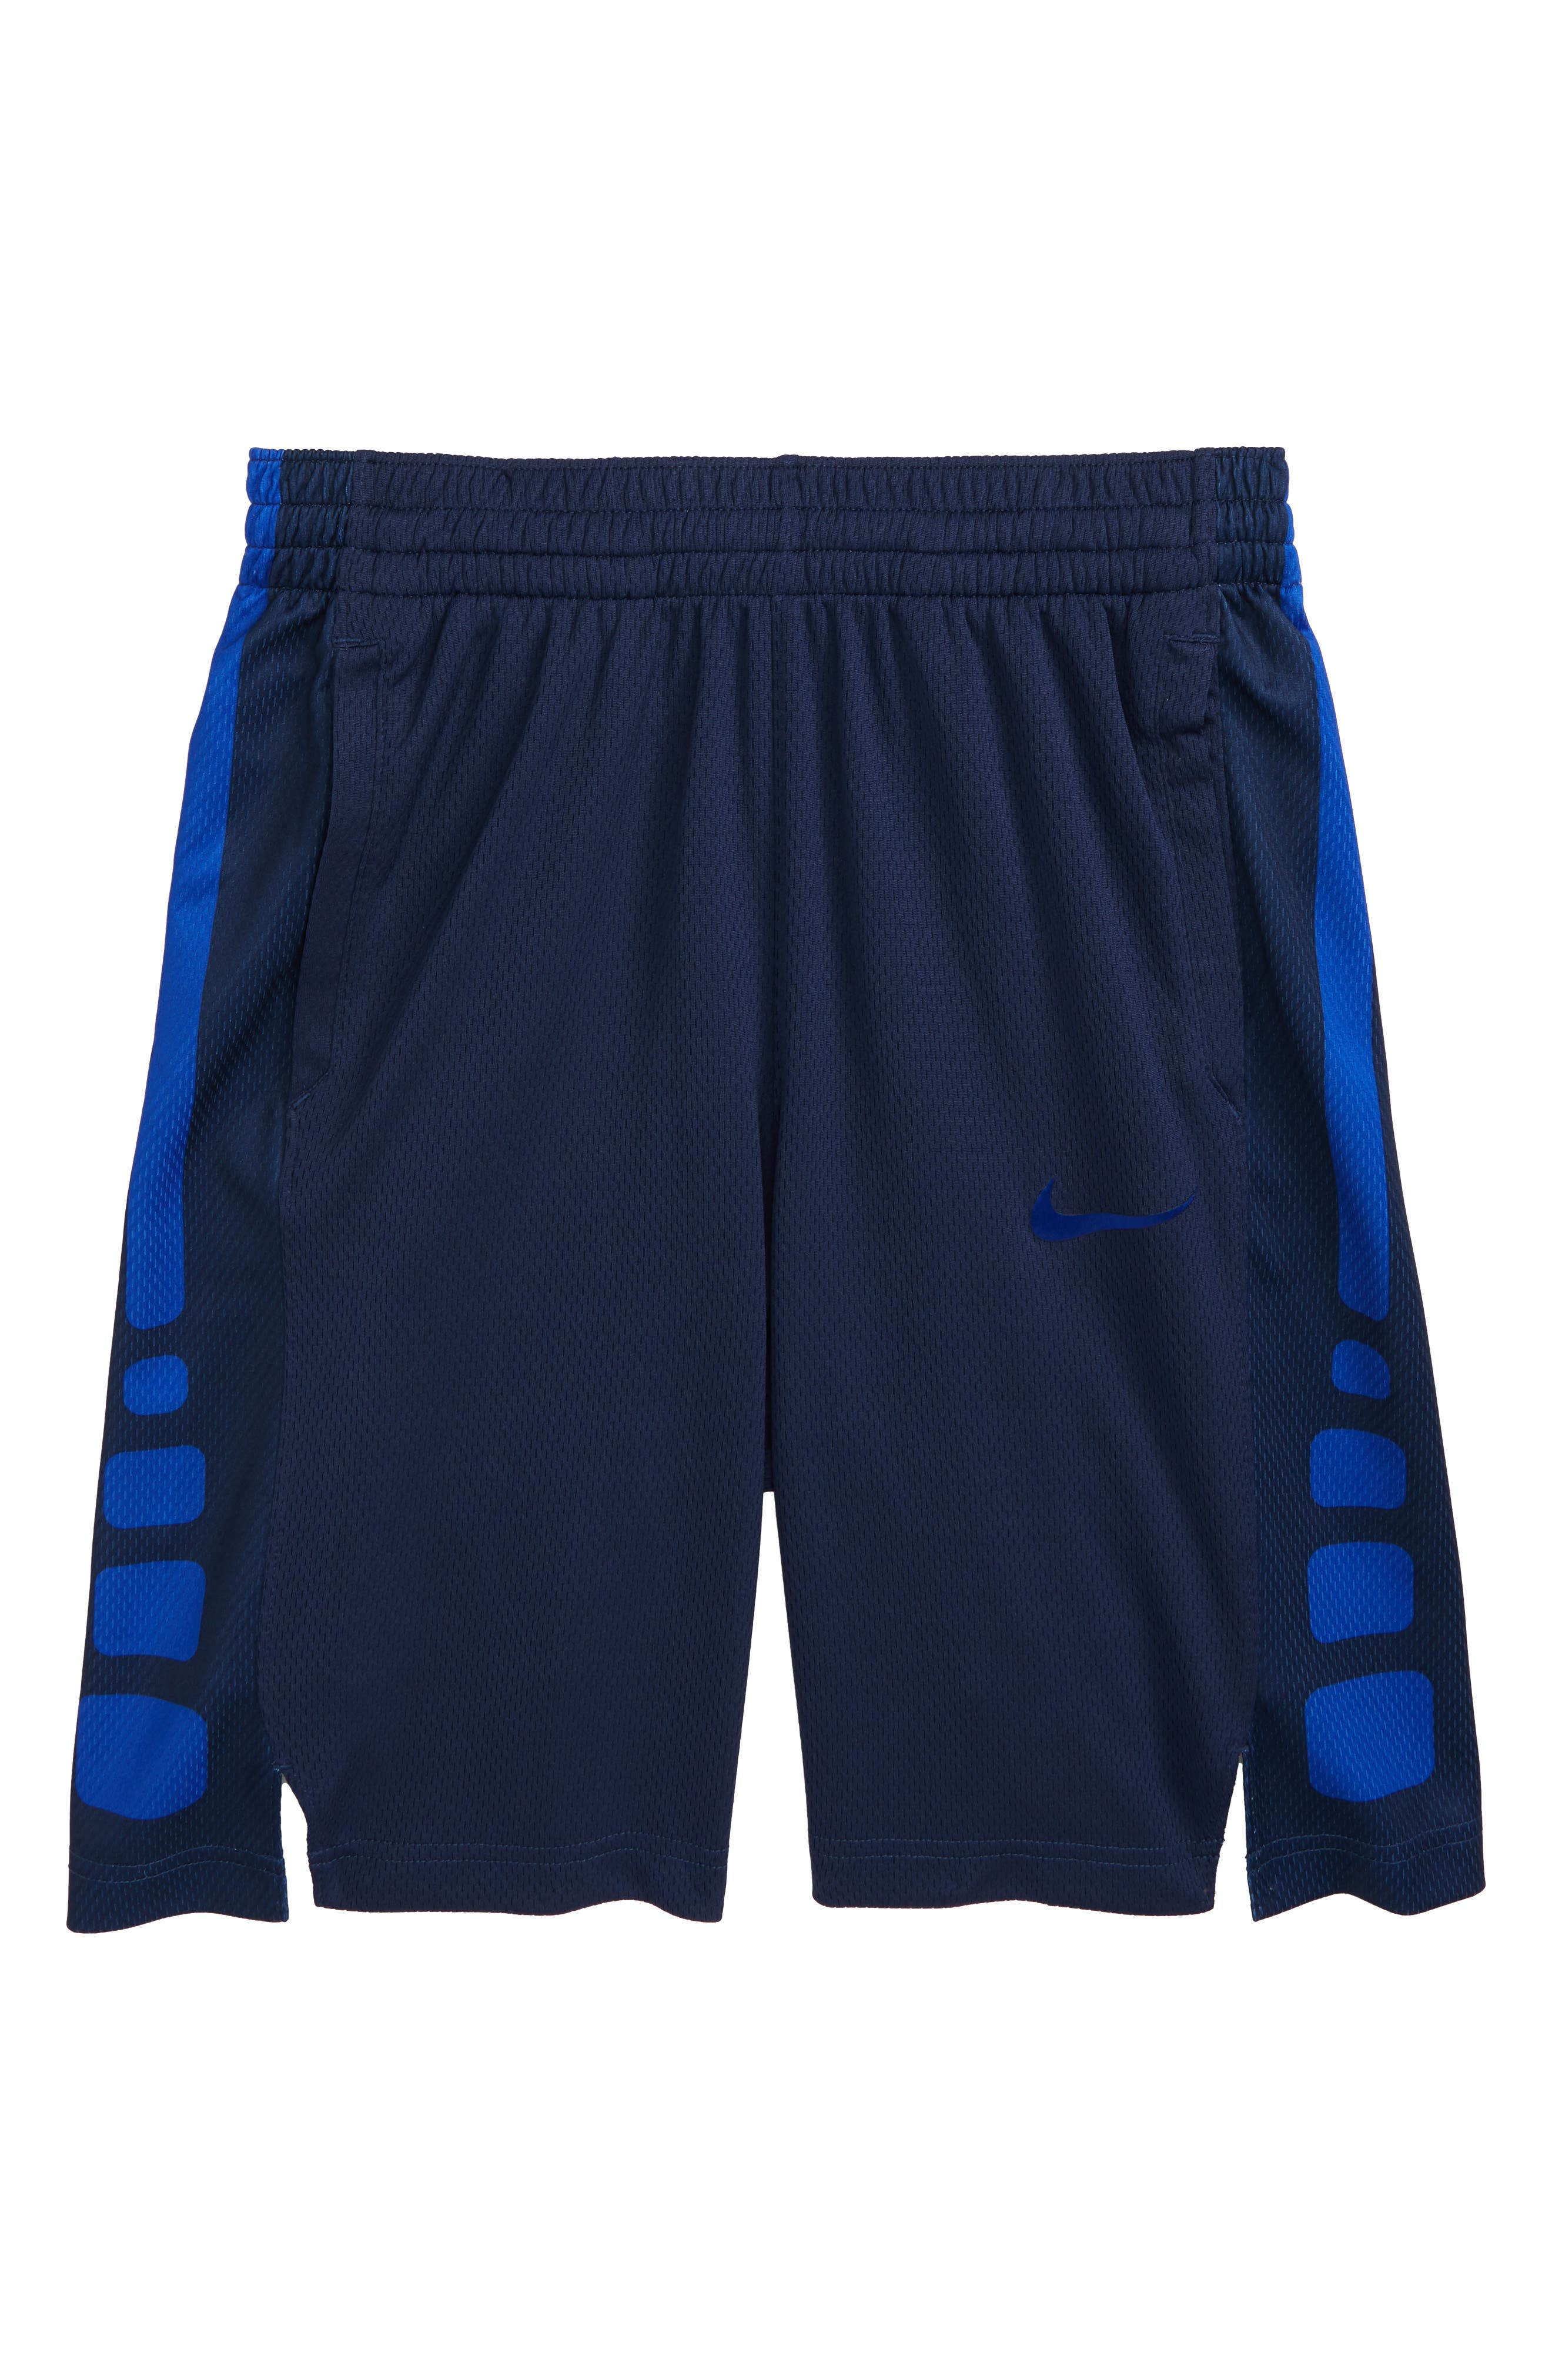 Dry Elite Basketball Shorts,                             Main thumbnail 11, color,